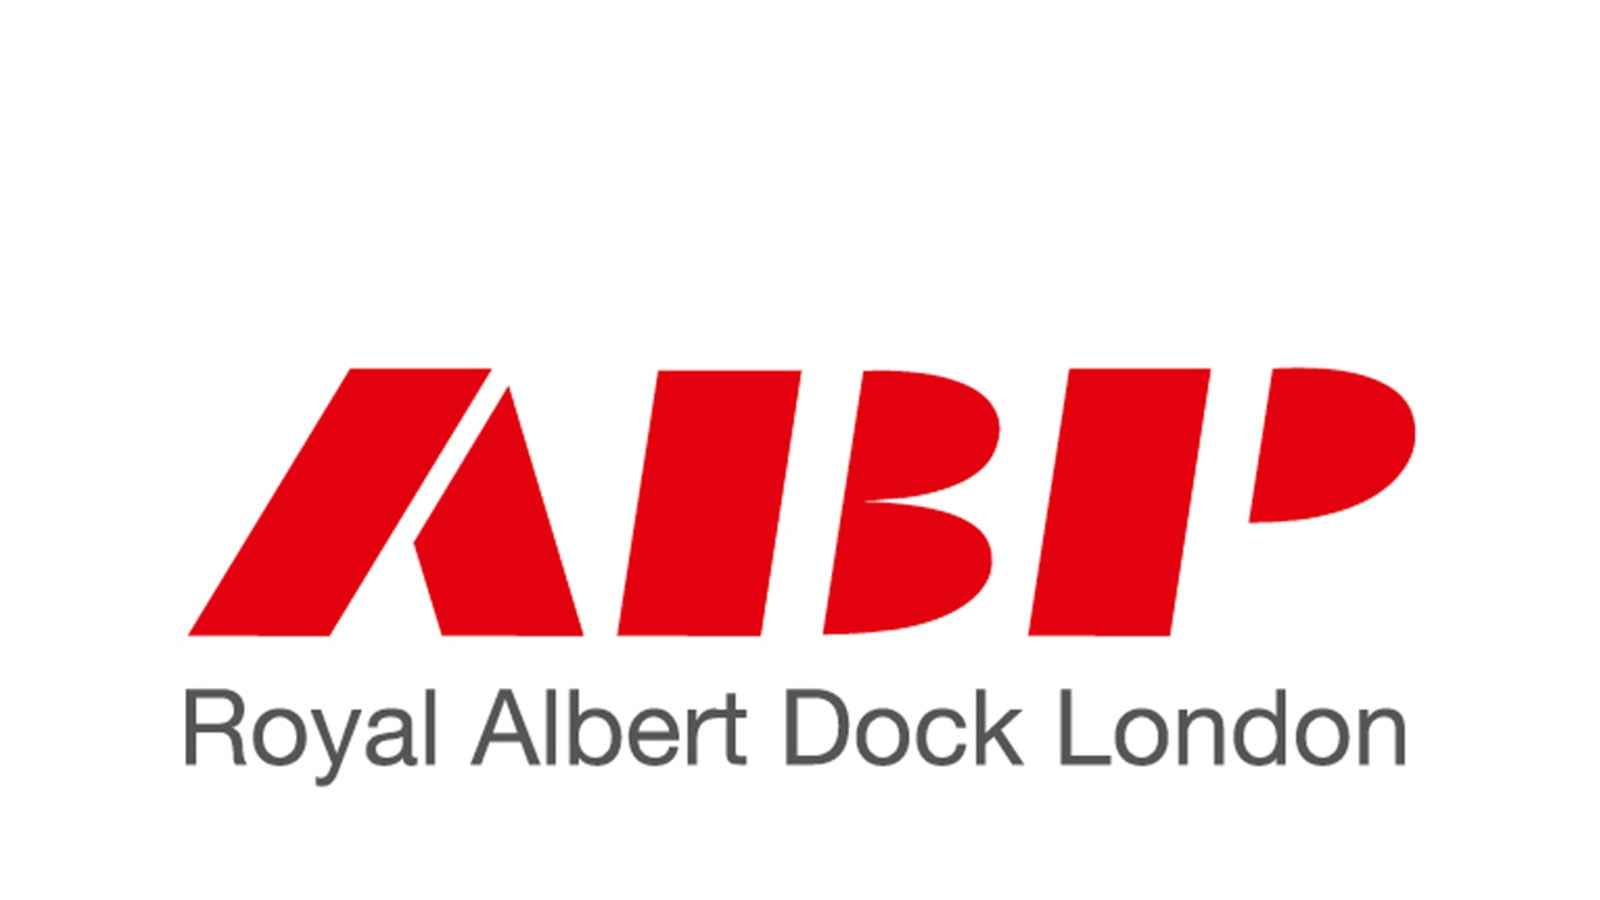 ABP have selected Asite's award-winning cloud platform for their landmark project at Royal Albert Dock in London.